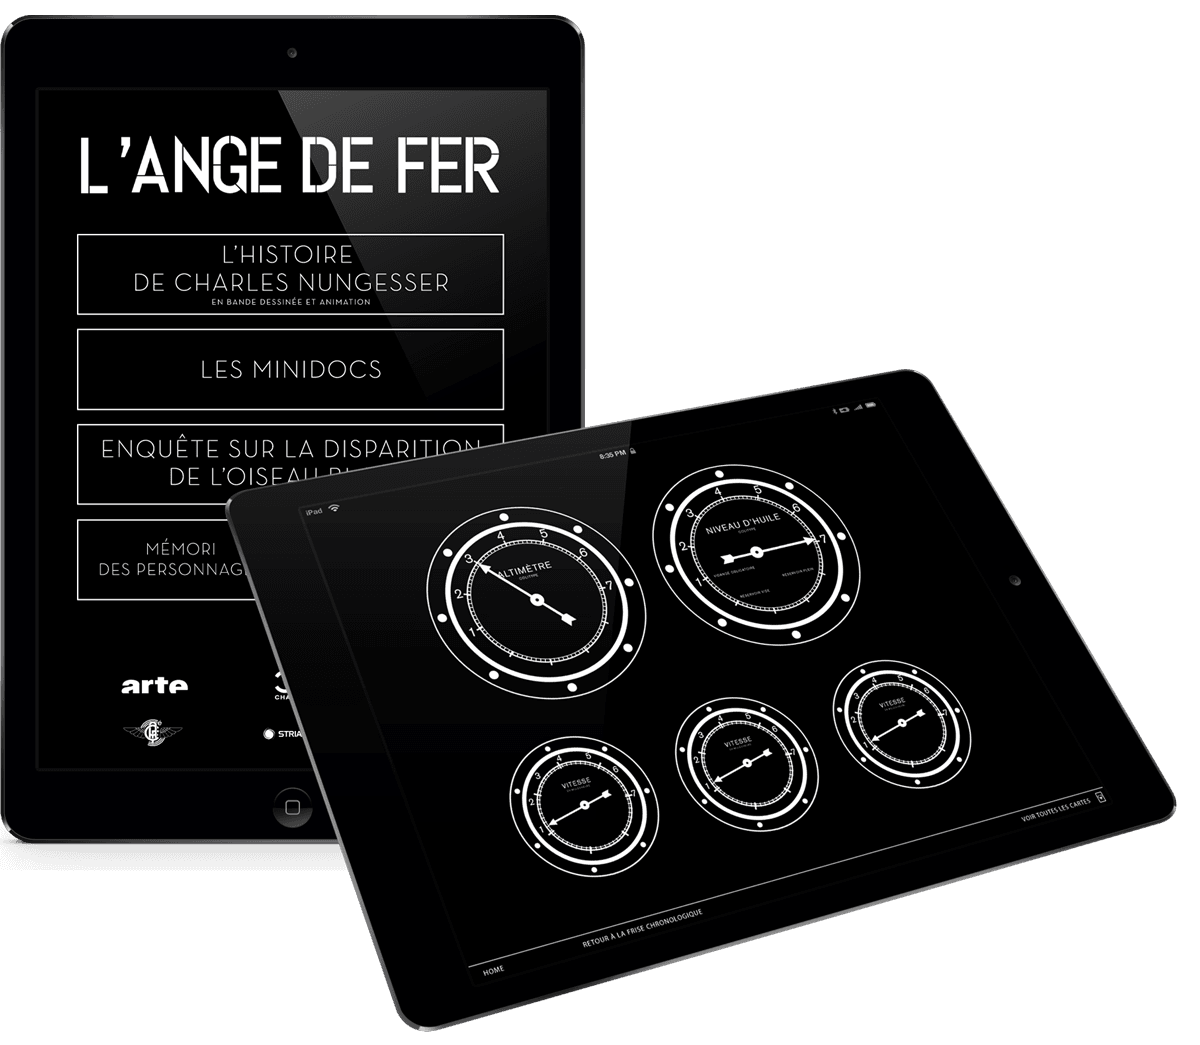 application Ipad - ange de fer